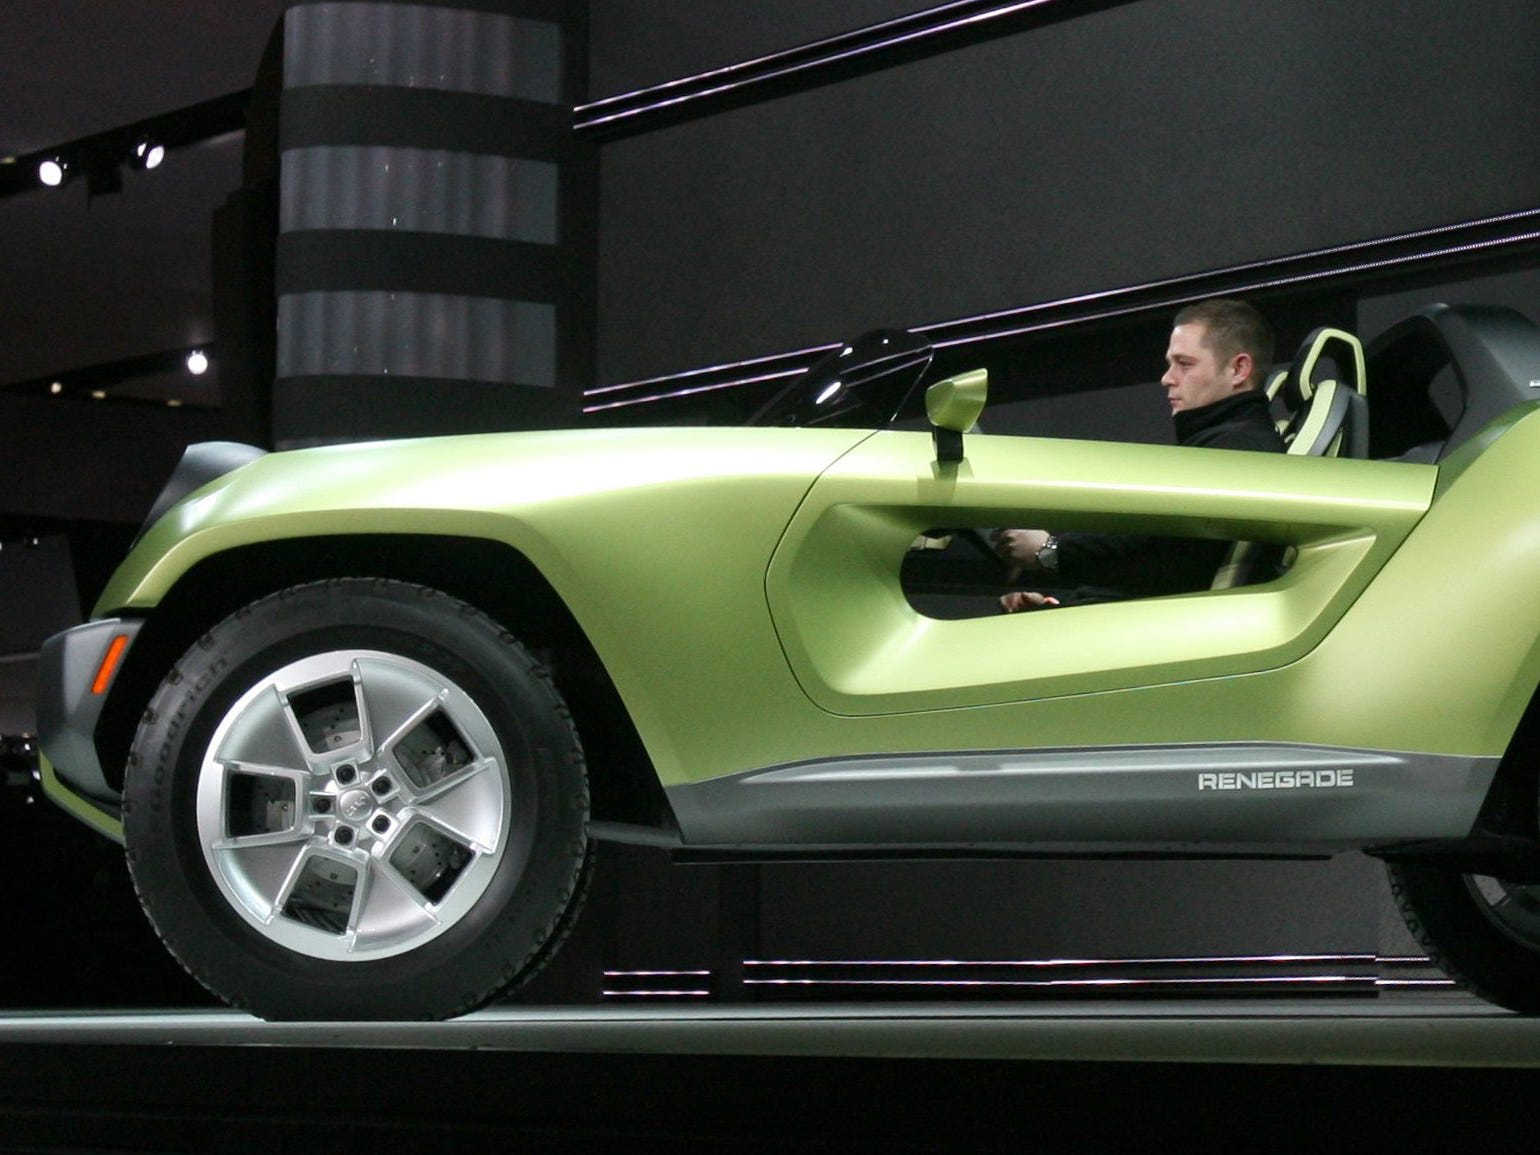 Chrysler introduces the Jeep Renegade Concept car at the North America International Auto show in Detroit Monday January 14, 2008.